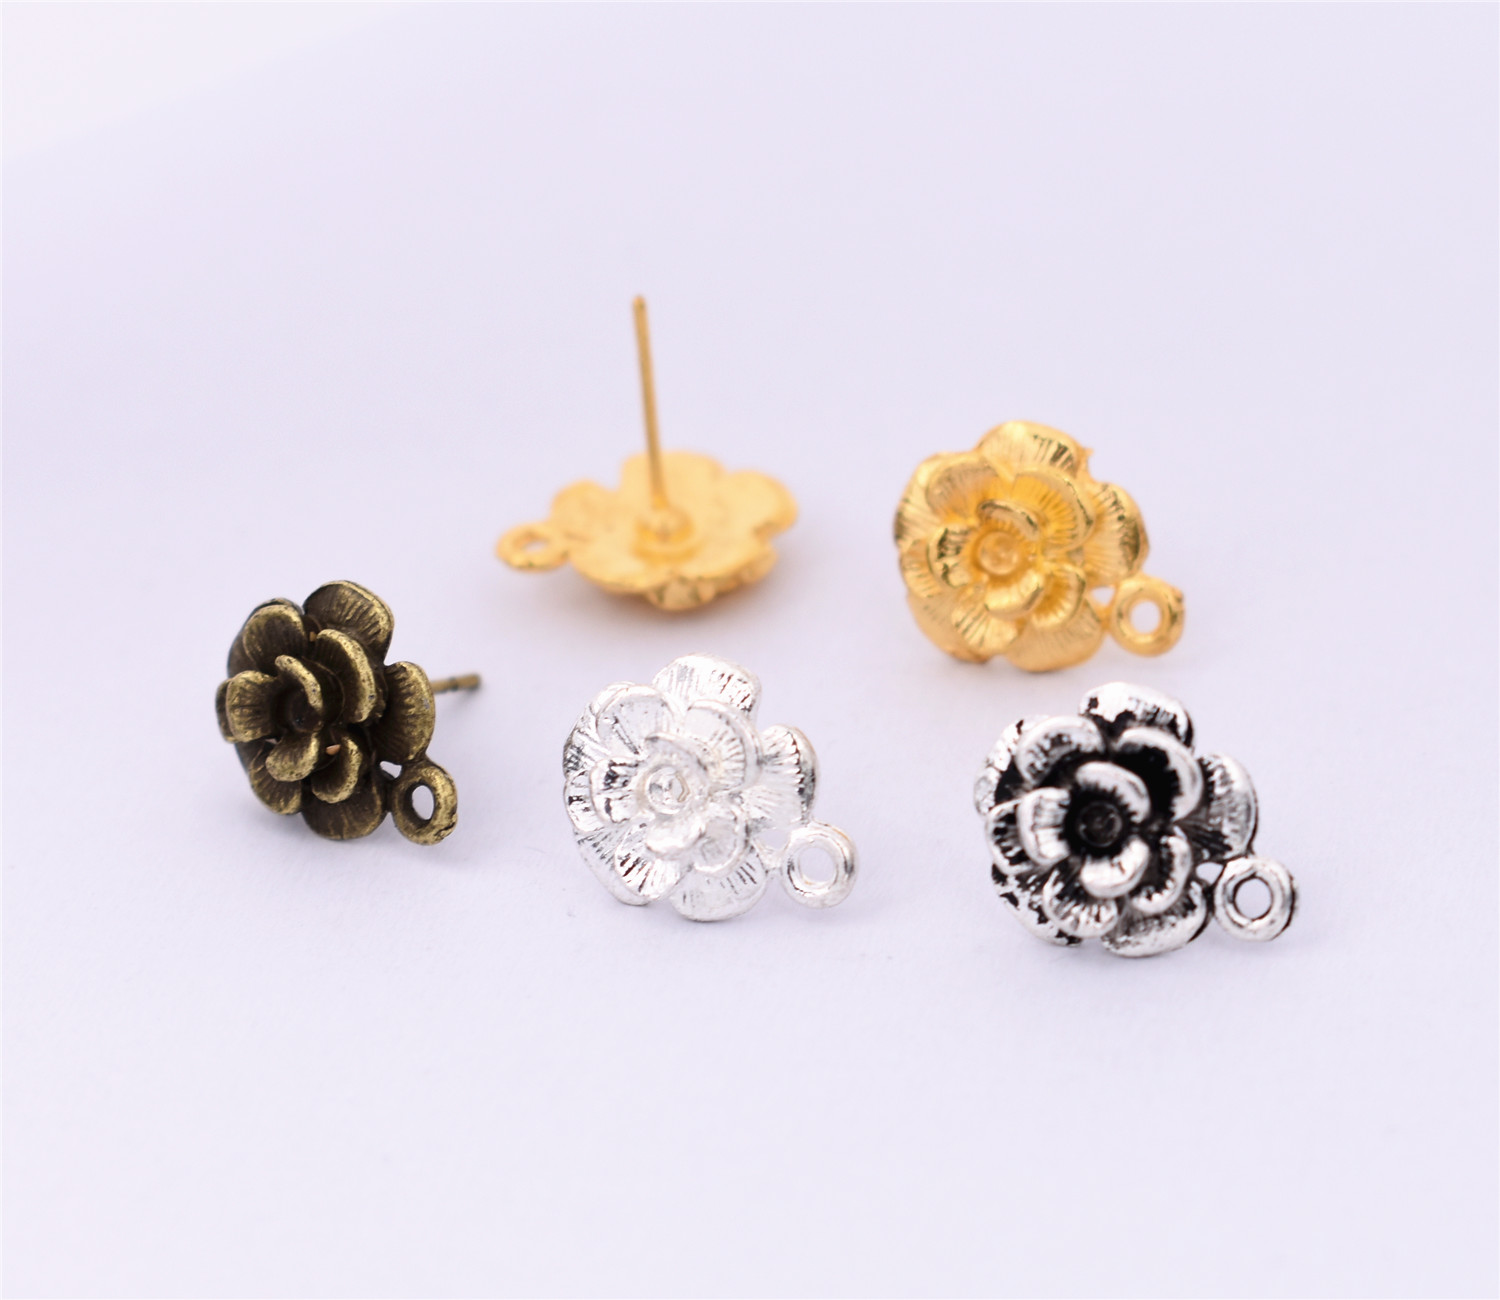 10pcs(5pair) 14x11mm 4 Colors Plated Alloy Material Flower Style Earrings Clasps Hooks Fittings DIY Jewelry Making Accessories